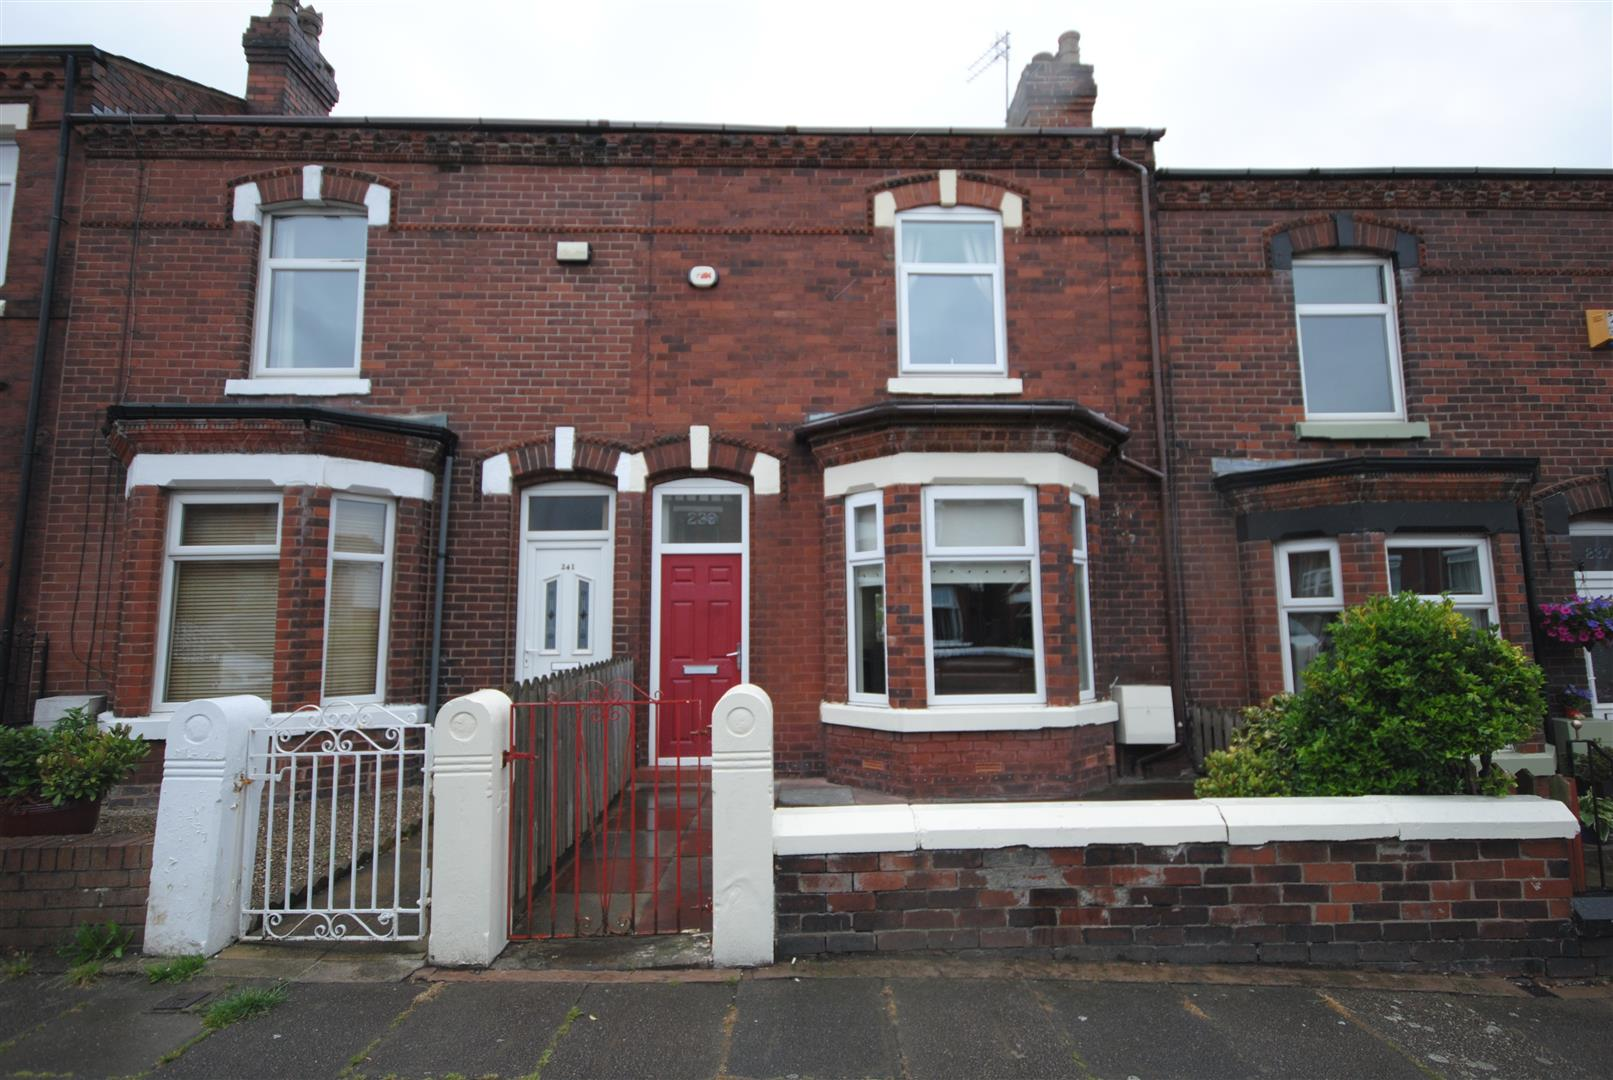 3 Bedrooms House for sale in Gidlow Lane, Wigan